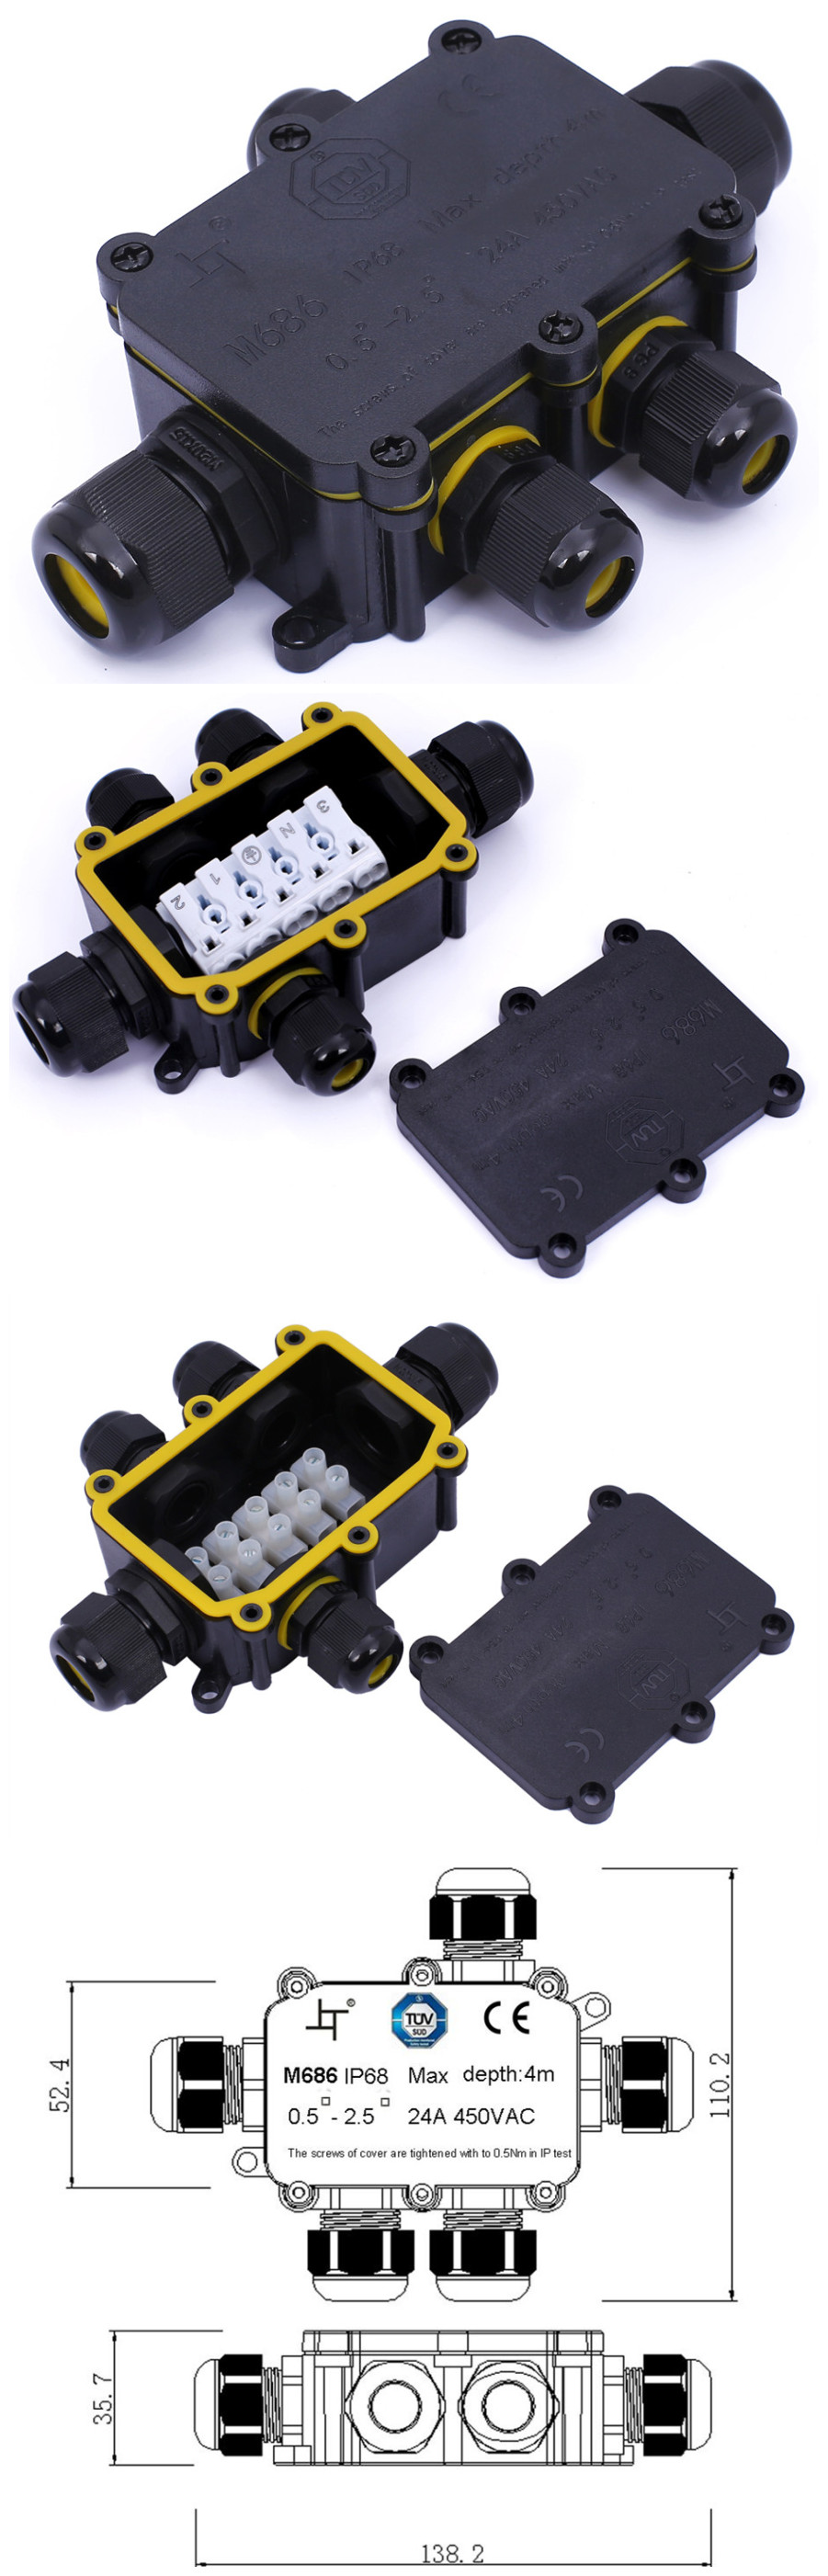 TUV 2 way IP68 outdoor electronic plastic terminal connecting waterproof cable junction box